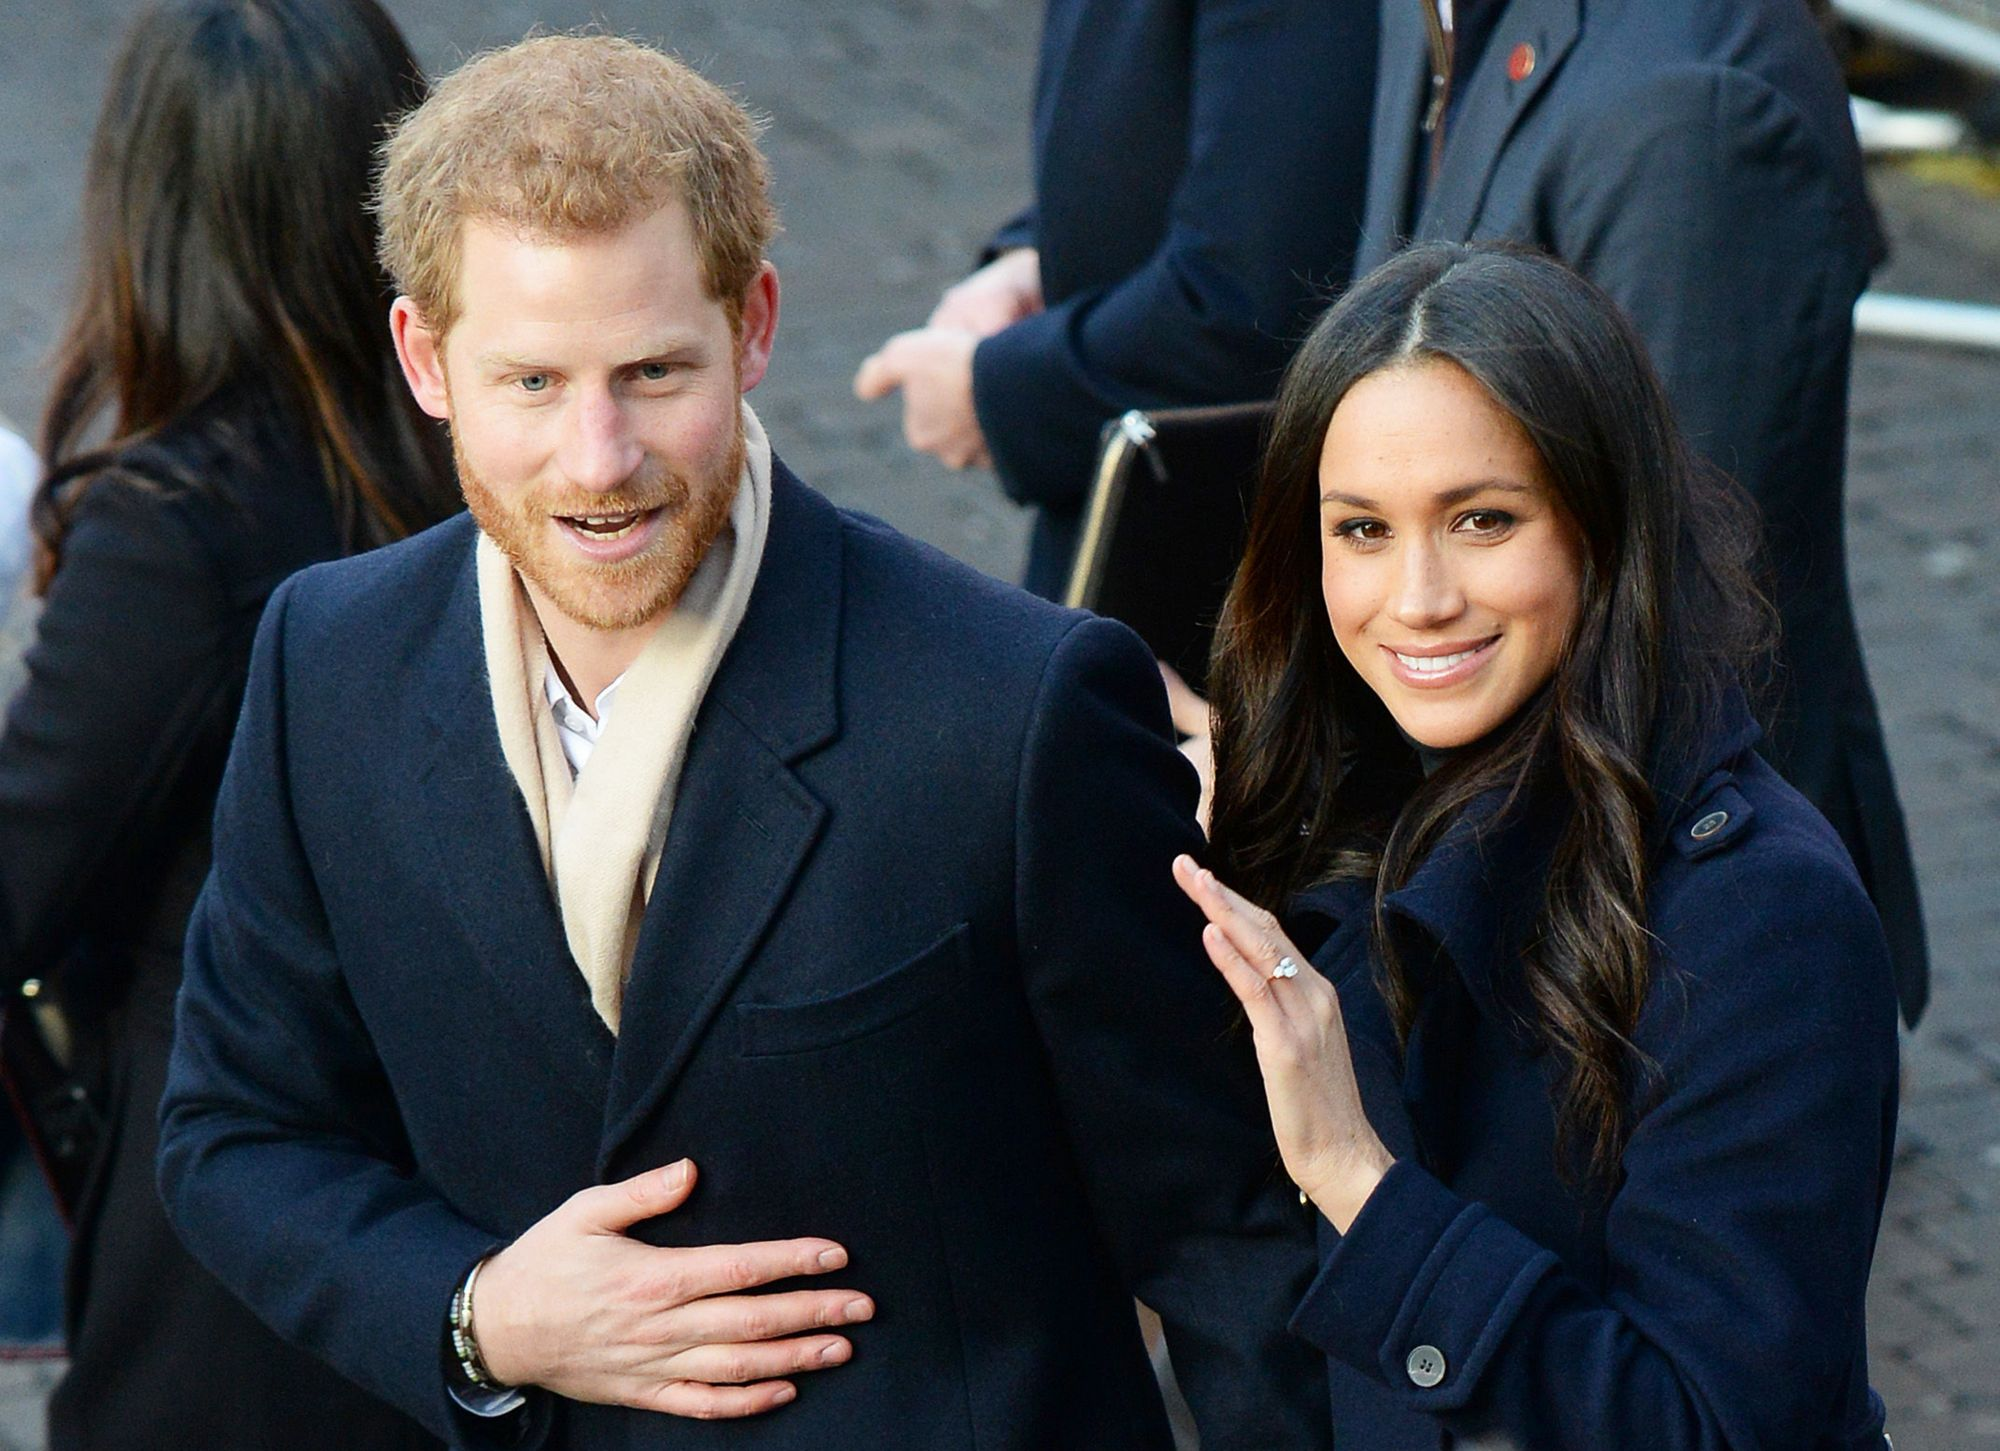 Prince Harry and Meghan Markle arrive at the Nottingham Contemporary in Nottingham, to attend a Terrence Higgins Trust World AIDS Day charity fair on their first official engagement together. (Photo by Joe Giddens/PA Images via Getty Images)